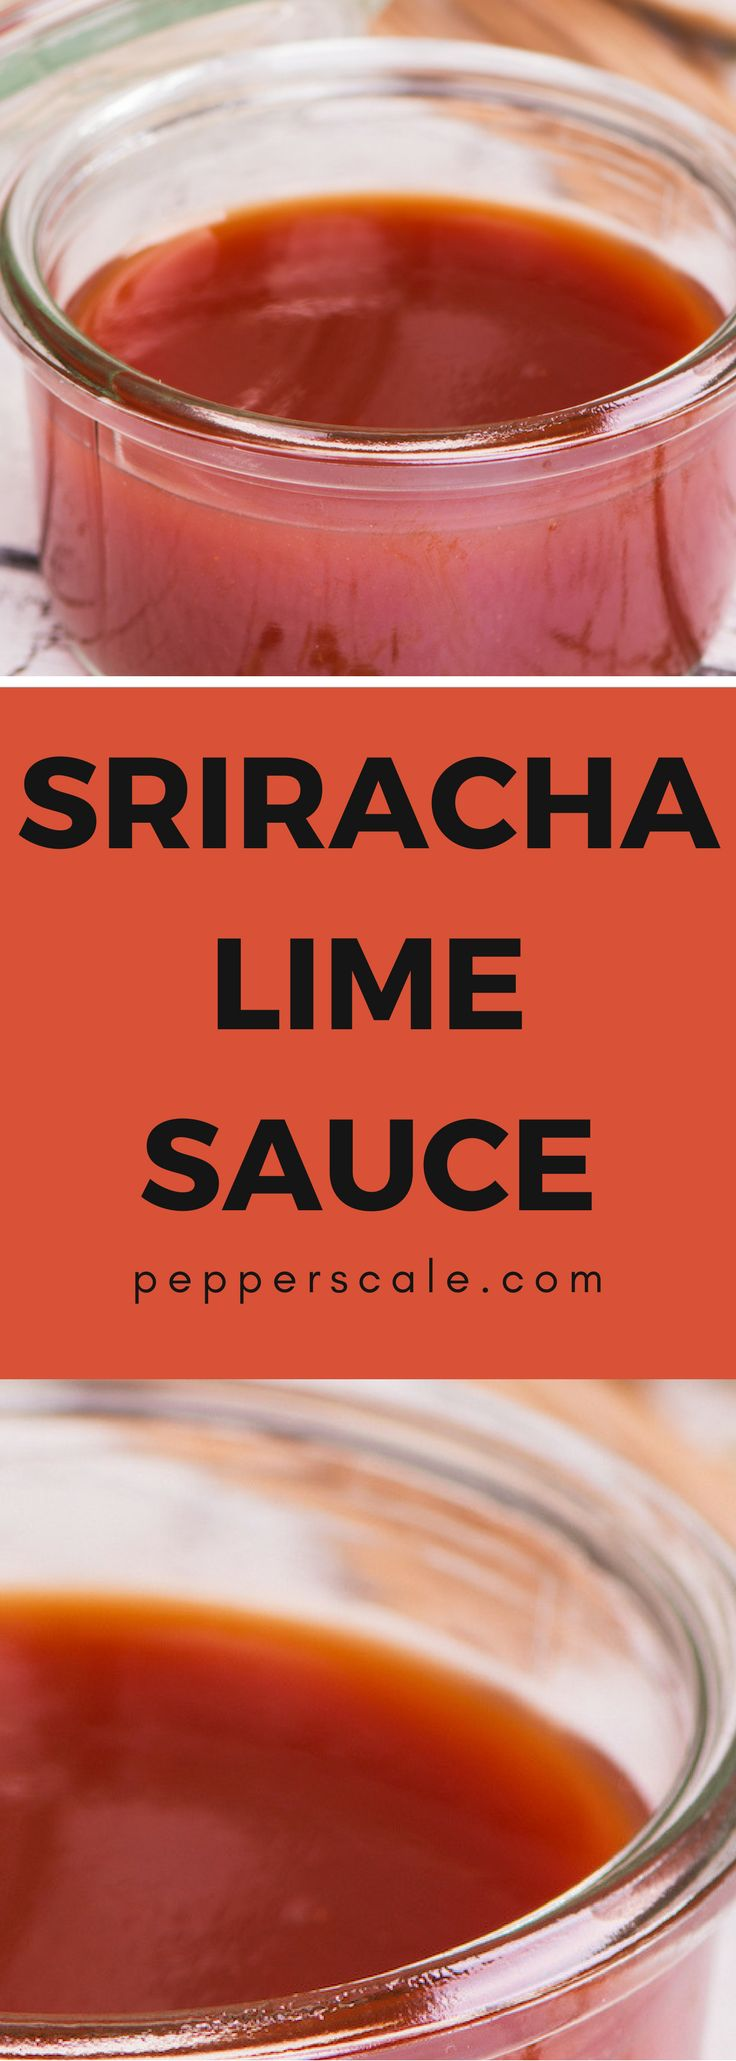 Rooster sauce with a citrusy tang…Sriracha sauce is the perfect base for all sorts of sauces. Itsmix of red jalapeños peppers, tomato, and garlicworks with anything from pasta sauces to barbecue wet rubs.